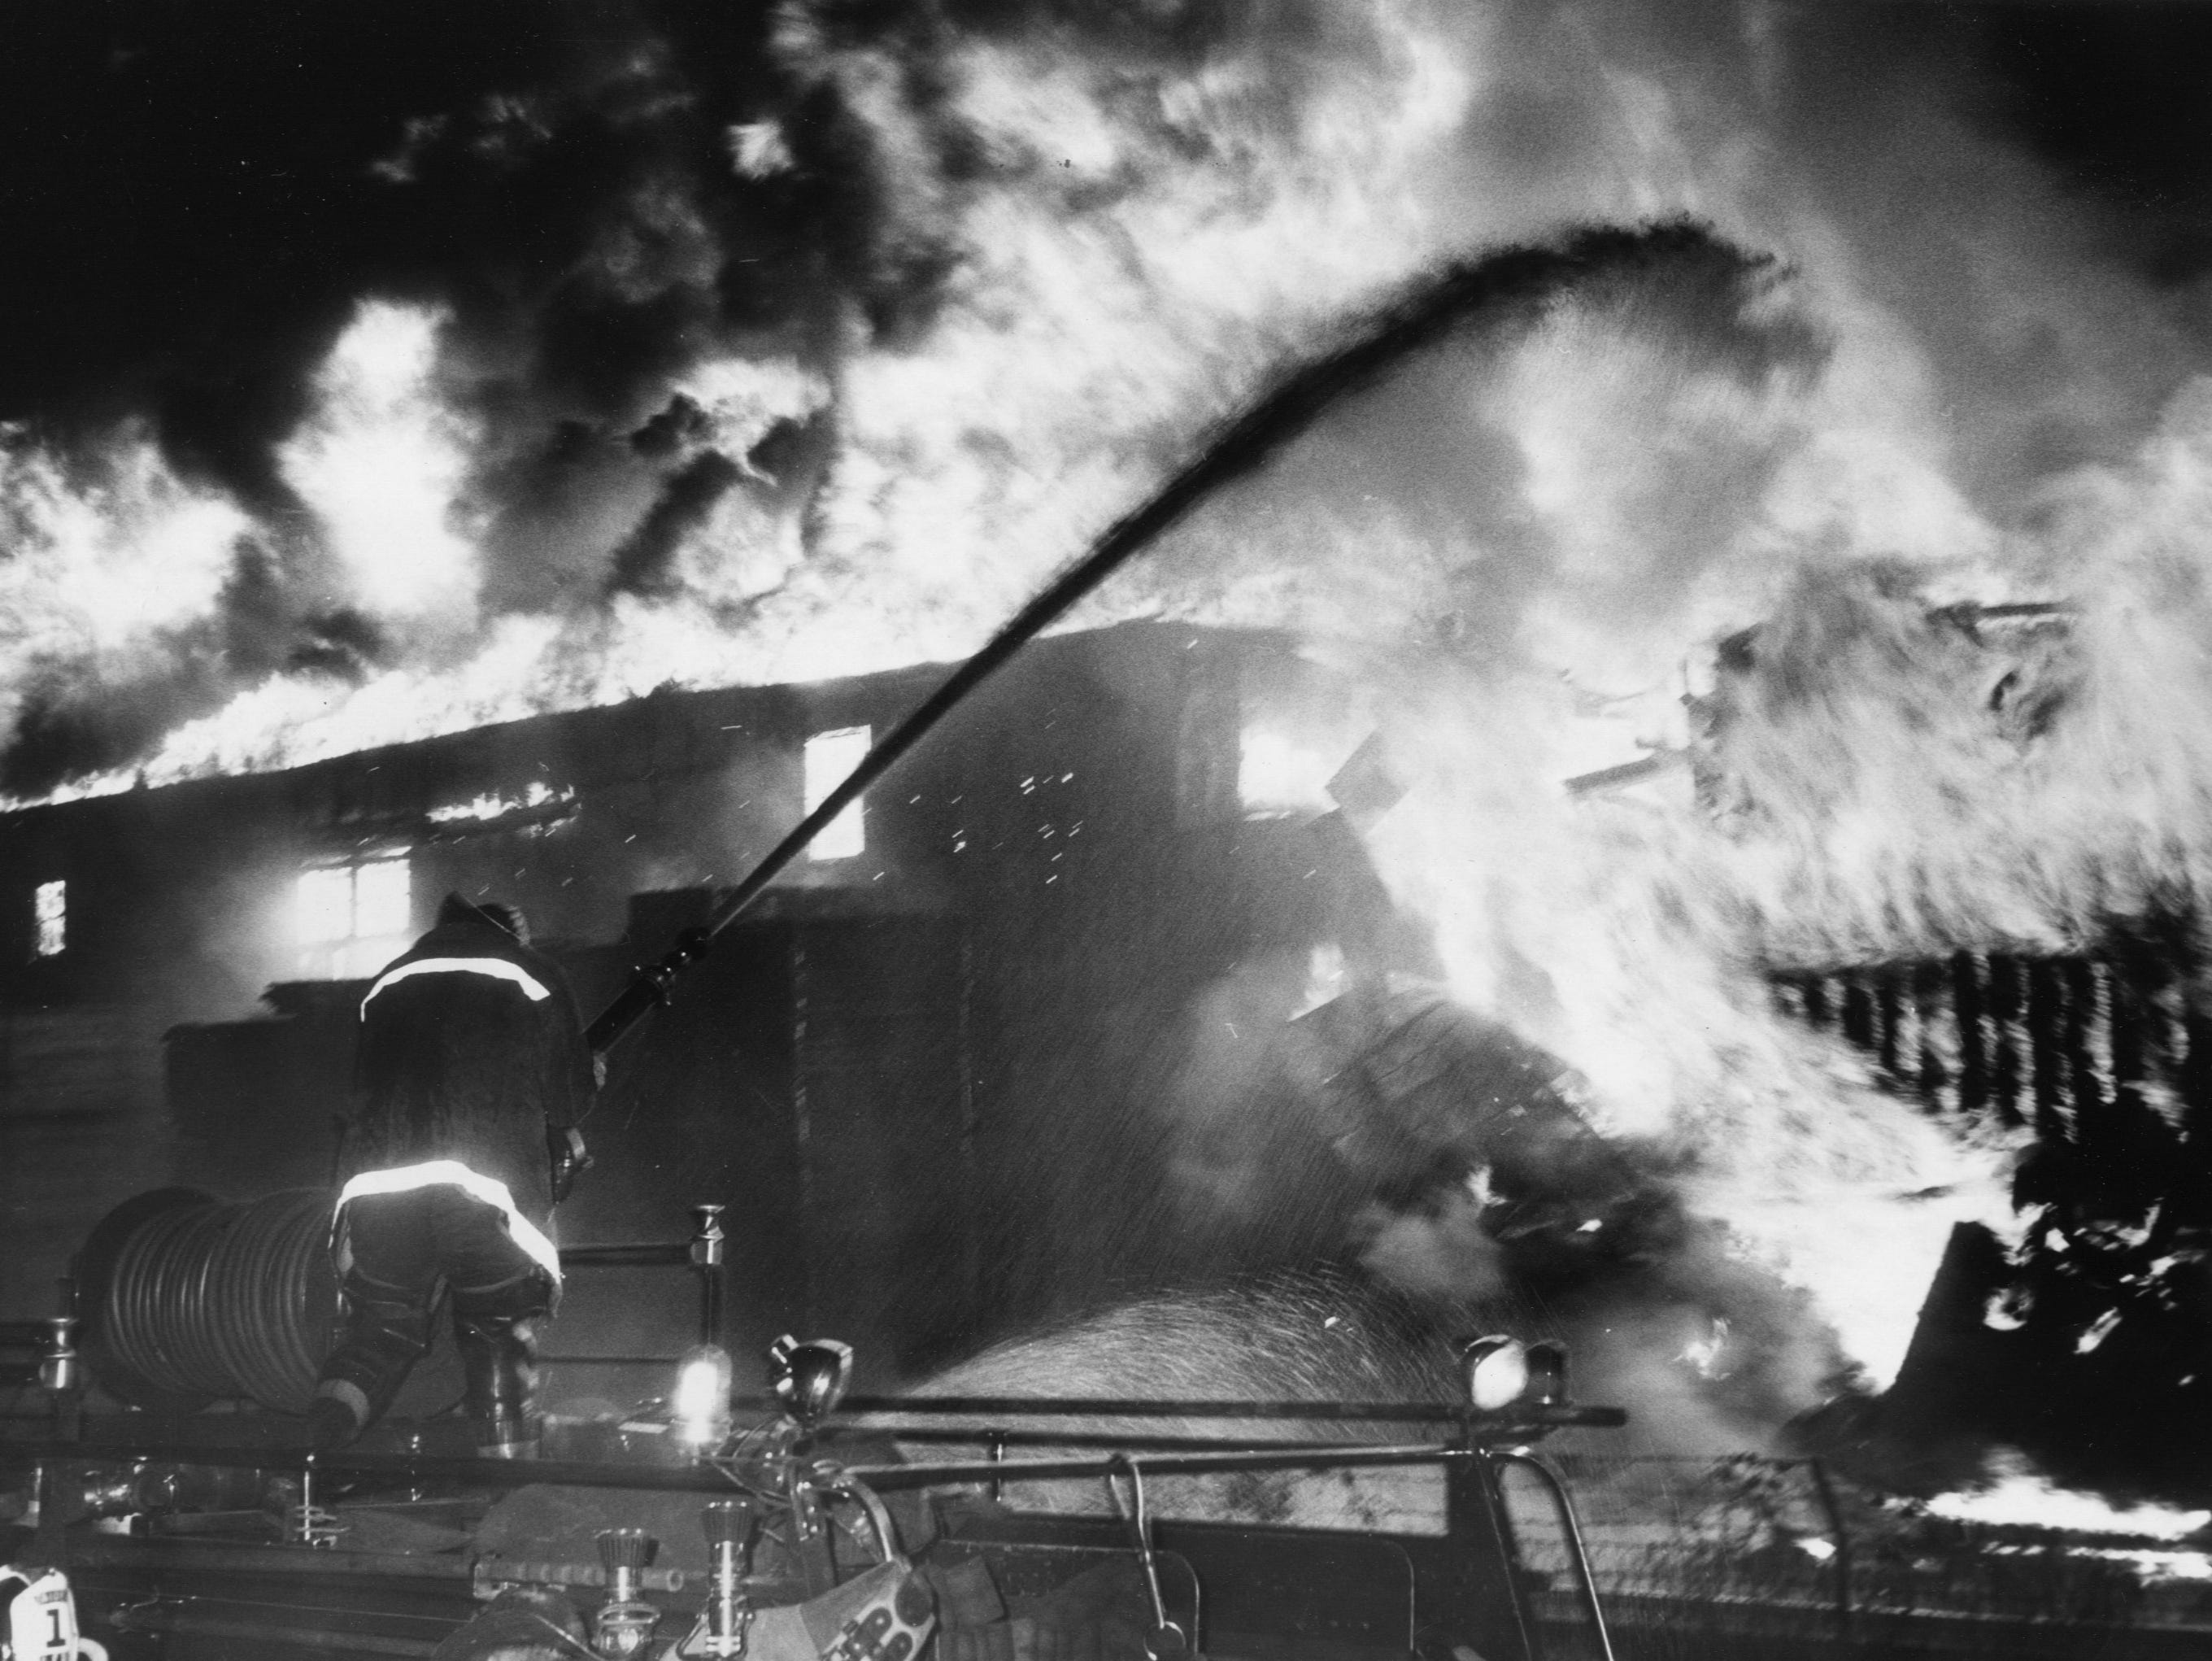 A four-alarm fire at Sash & Dash Co. ad Kentucky Lumber Co.